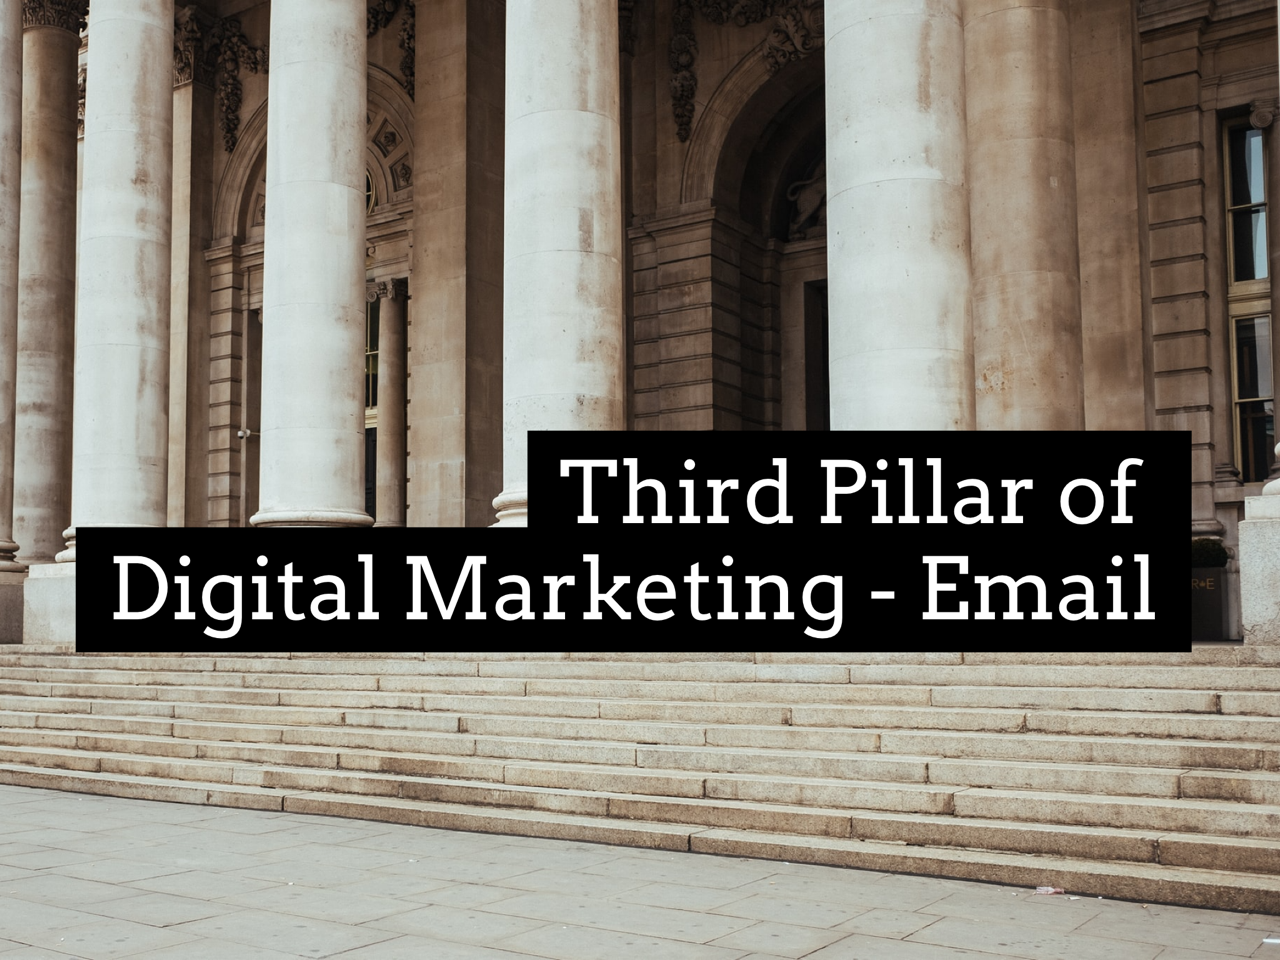 Third Pillar Digital Marketing - Email